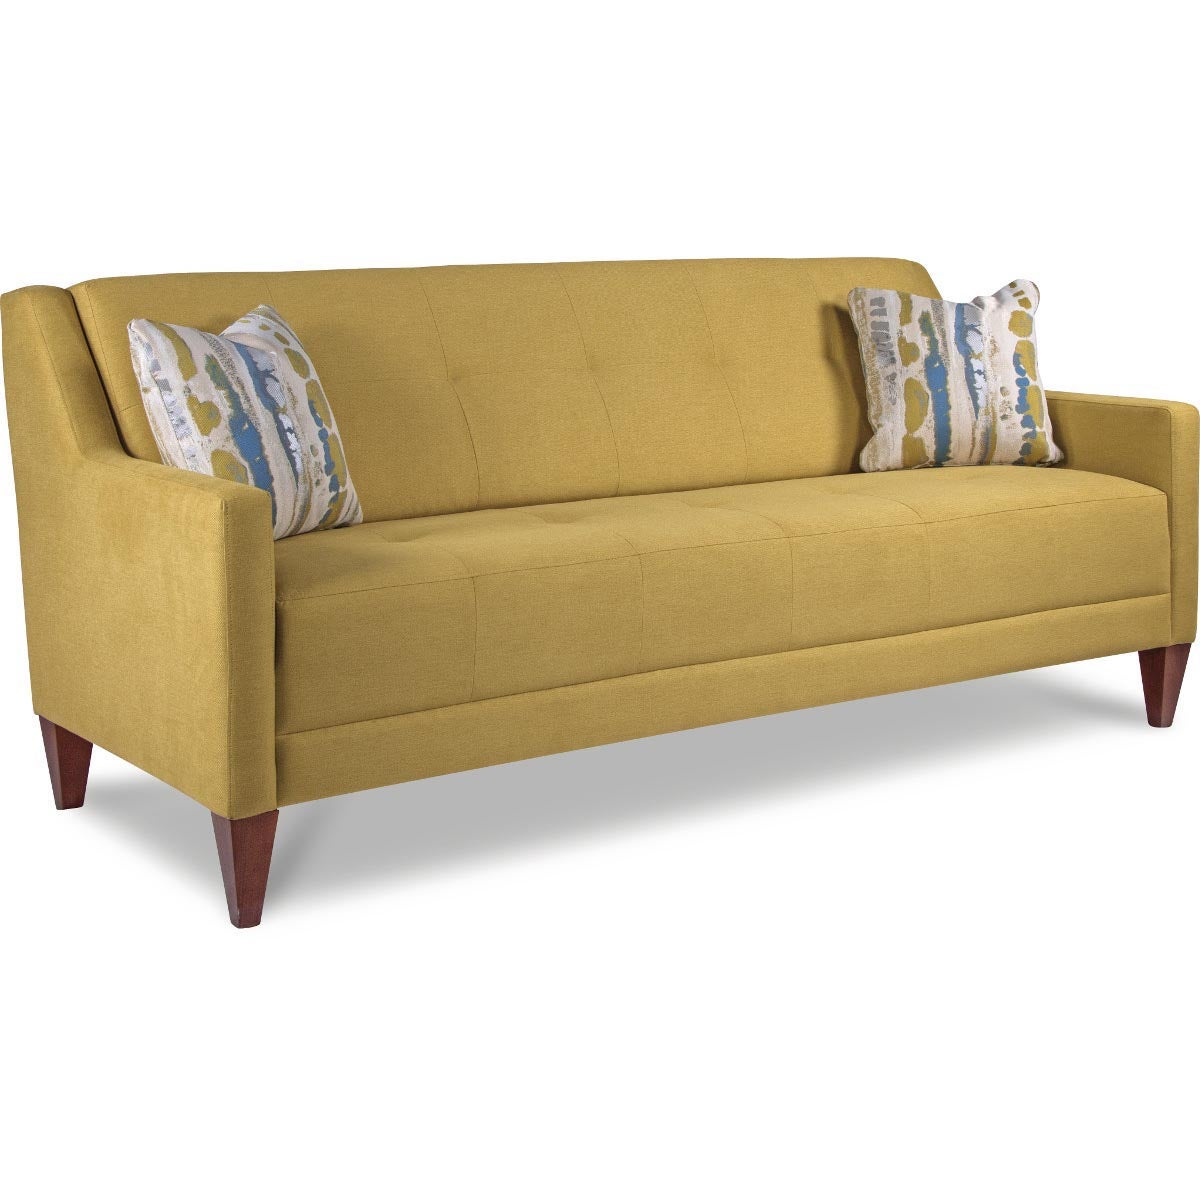 Verve premier sofa for Divan and settee